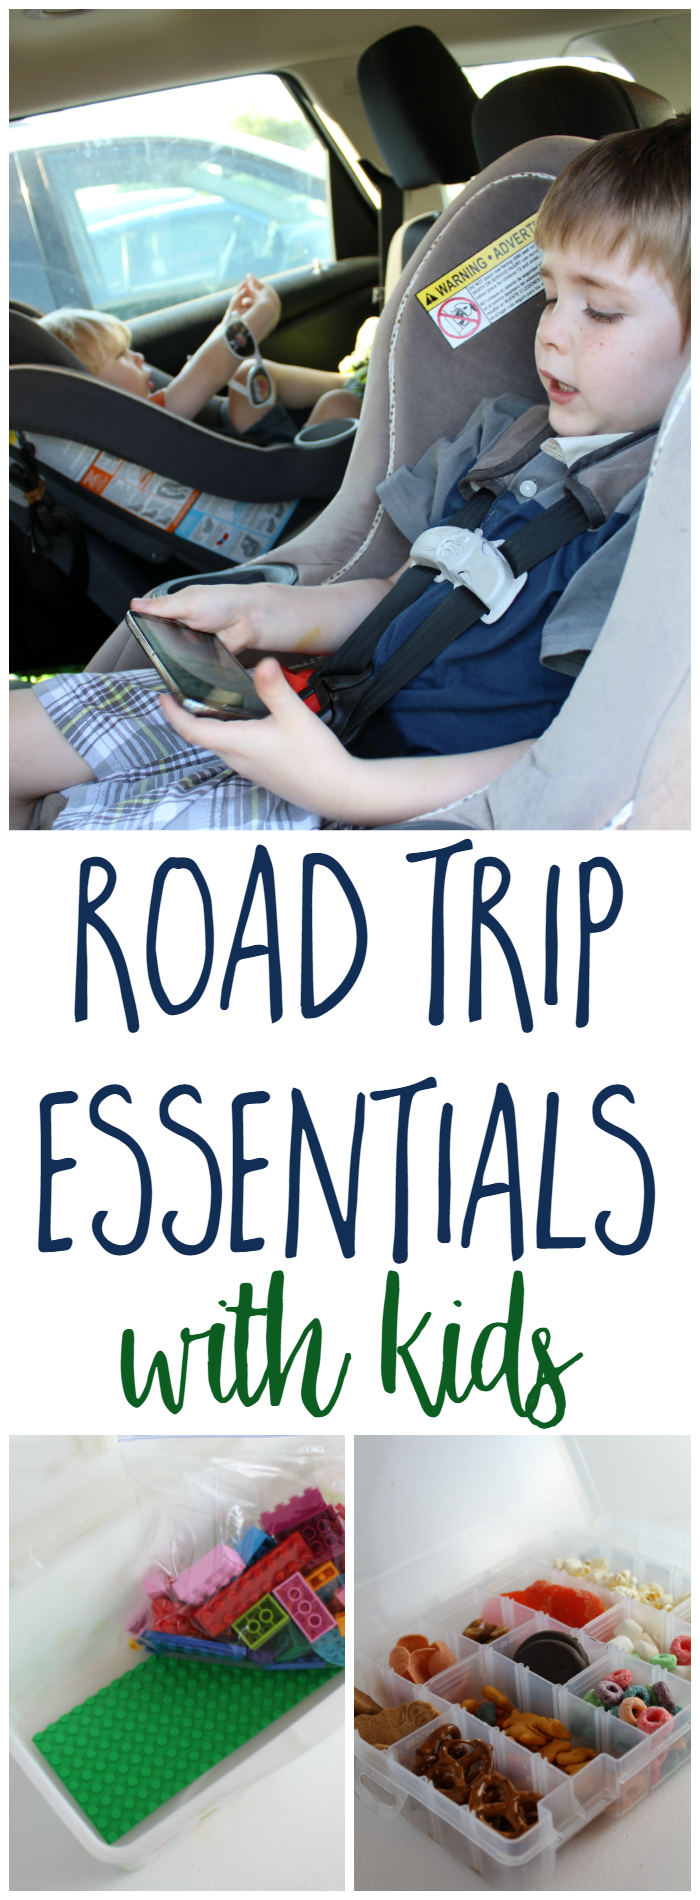 Road Trip Essentials with Kids - Those with children often cringe at the thought of traveling, especially a long car ride, with their kids in tow. Have no fear because we're sharing a few essentials for road trips with kids!